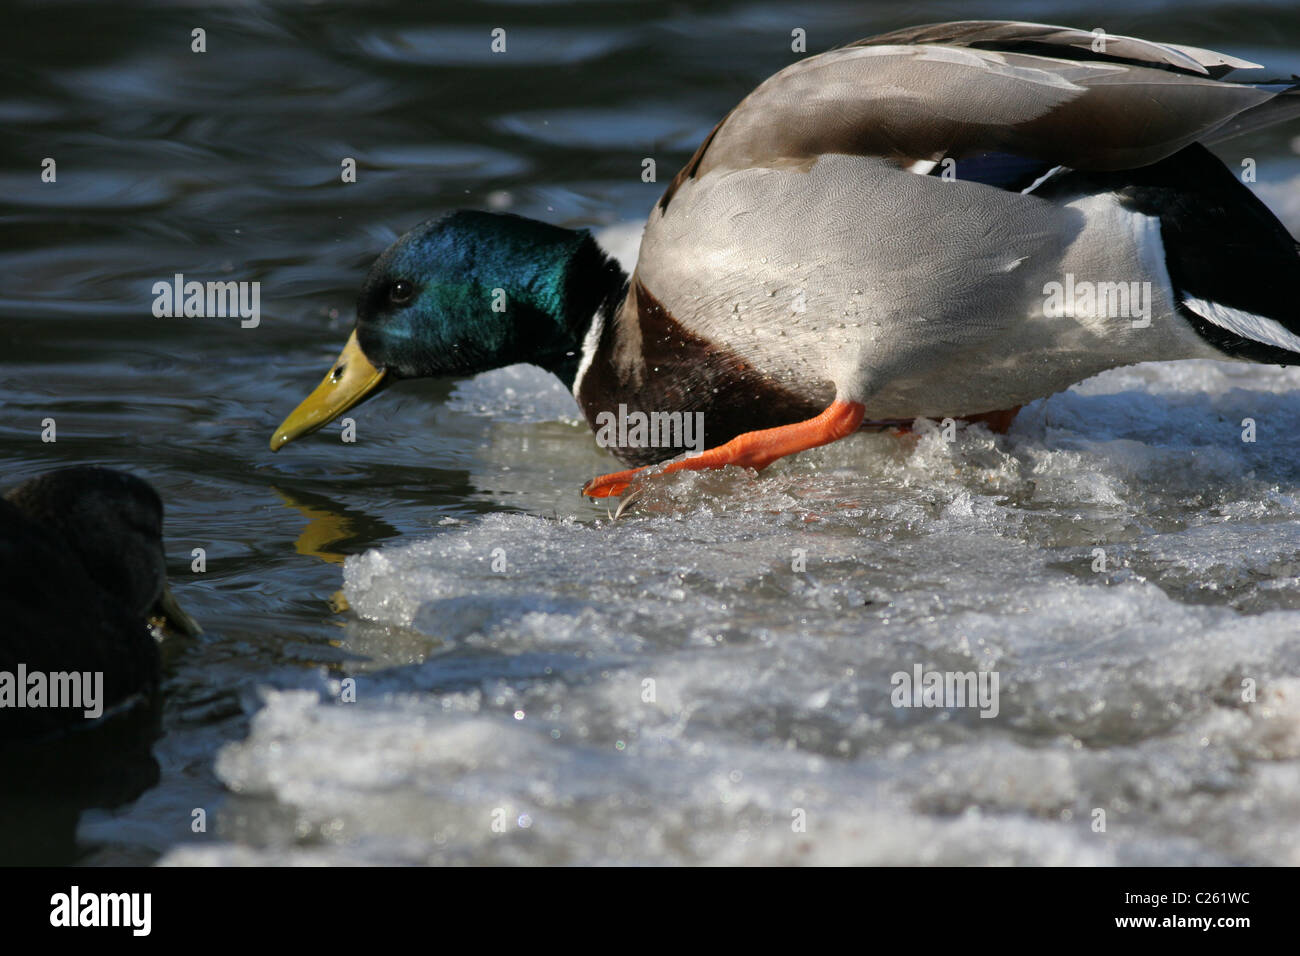 Drake Mallard Duck tentatively enters the water - Stock Image